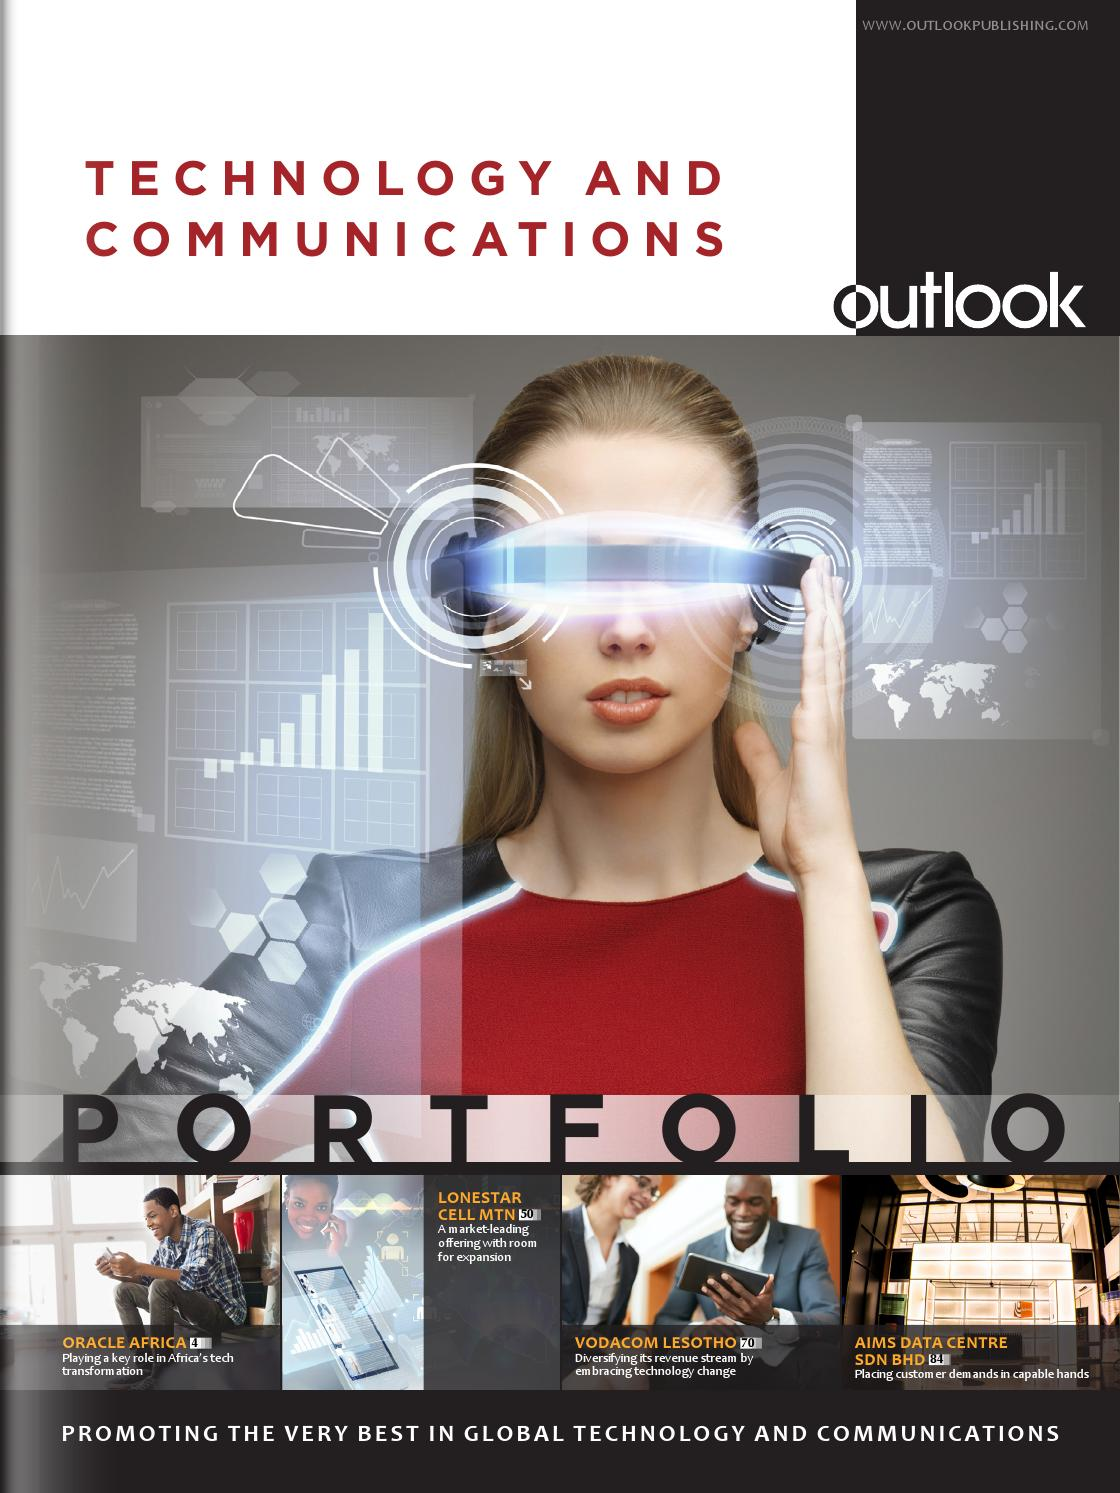 Outlook Portfolio - Technology and Communications by Outlook